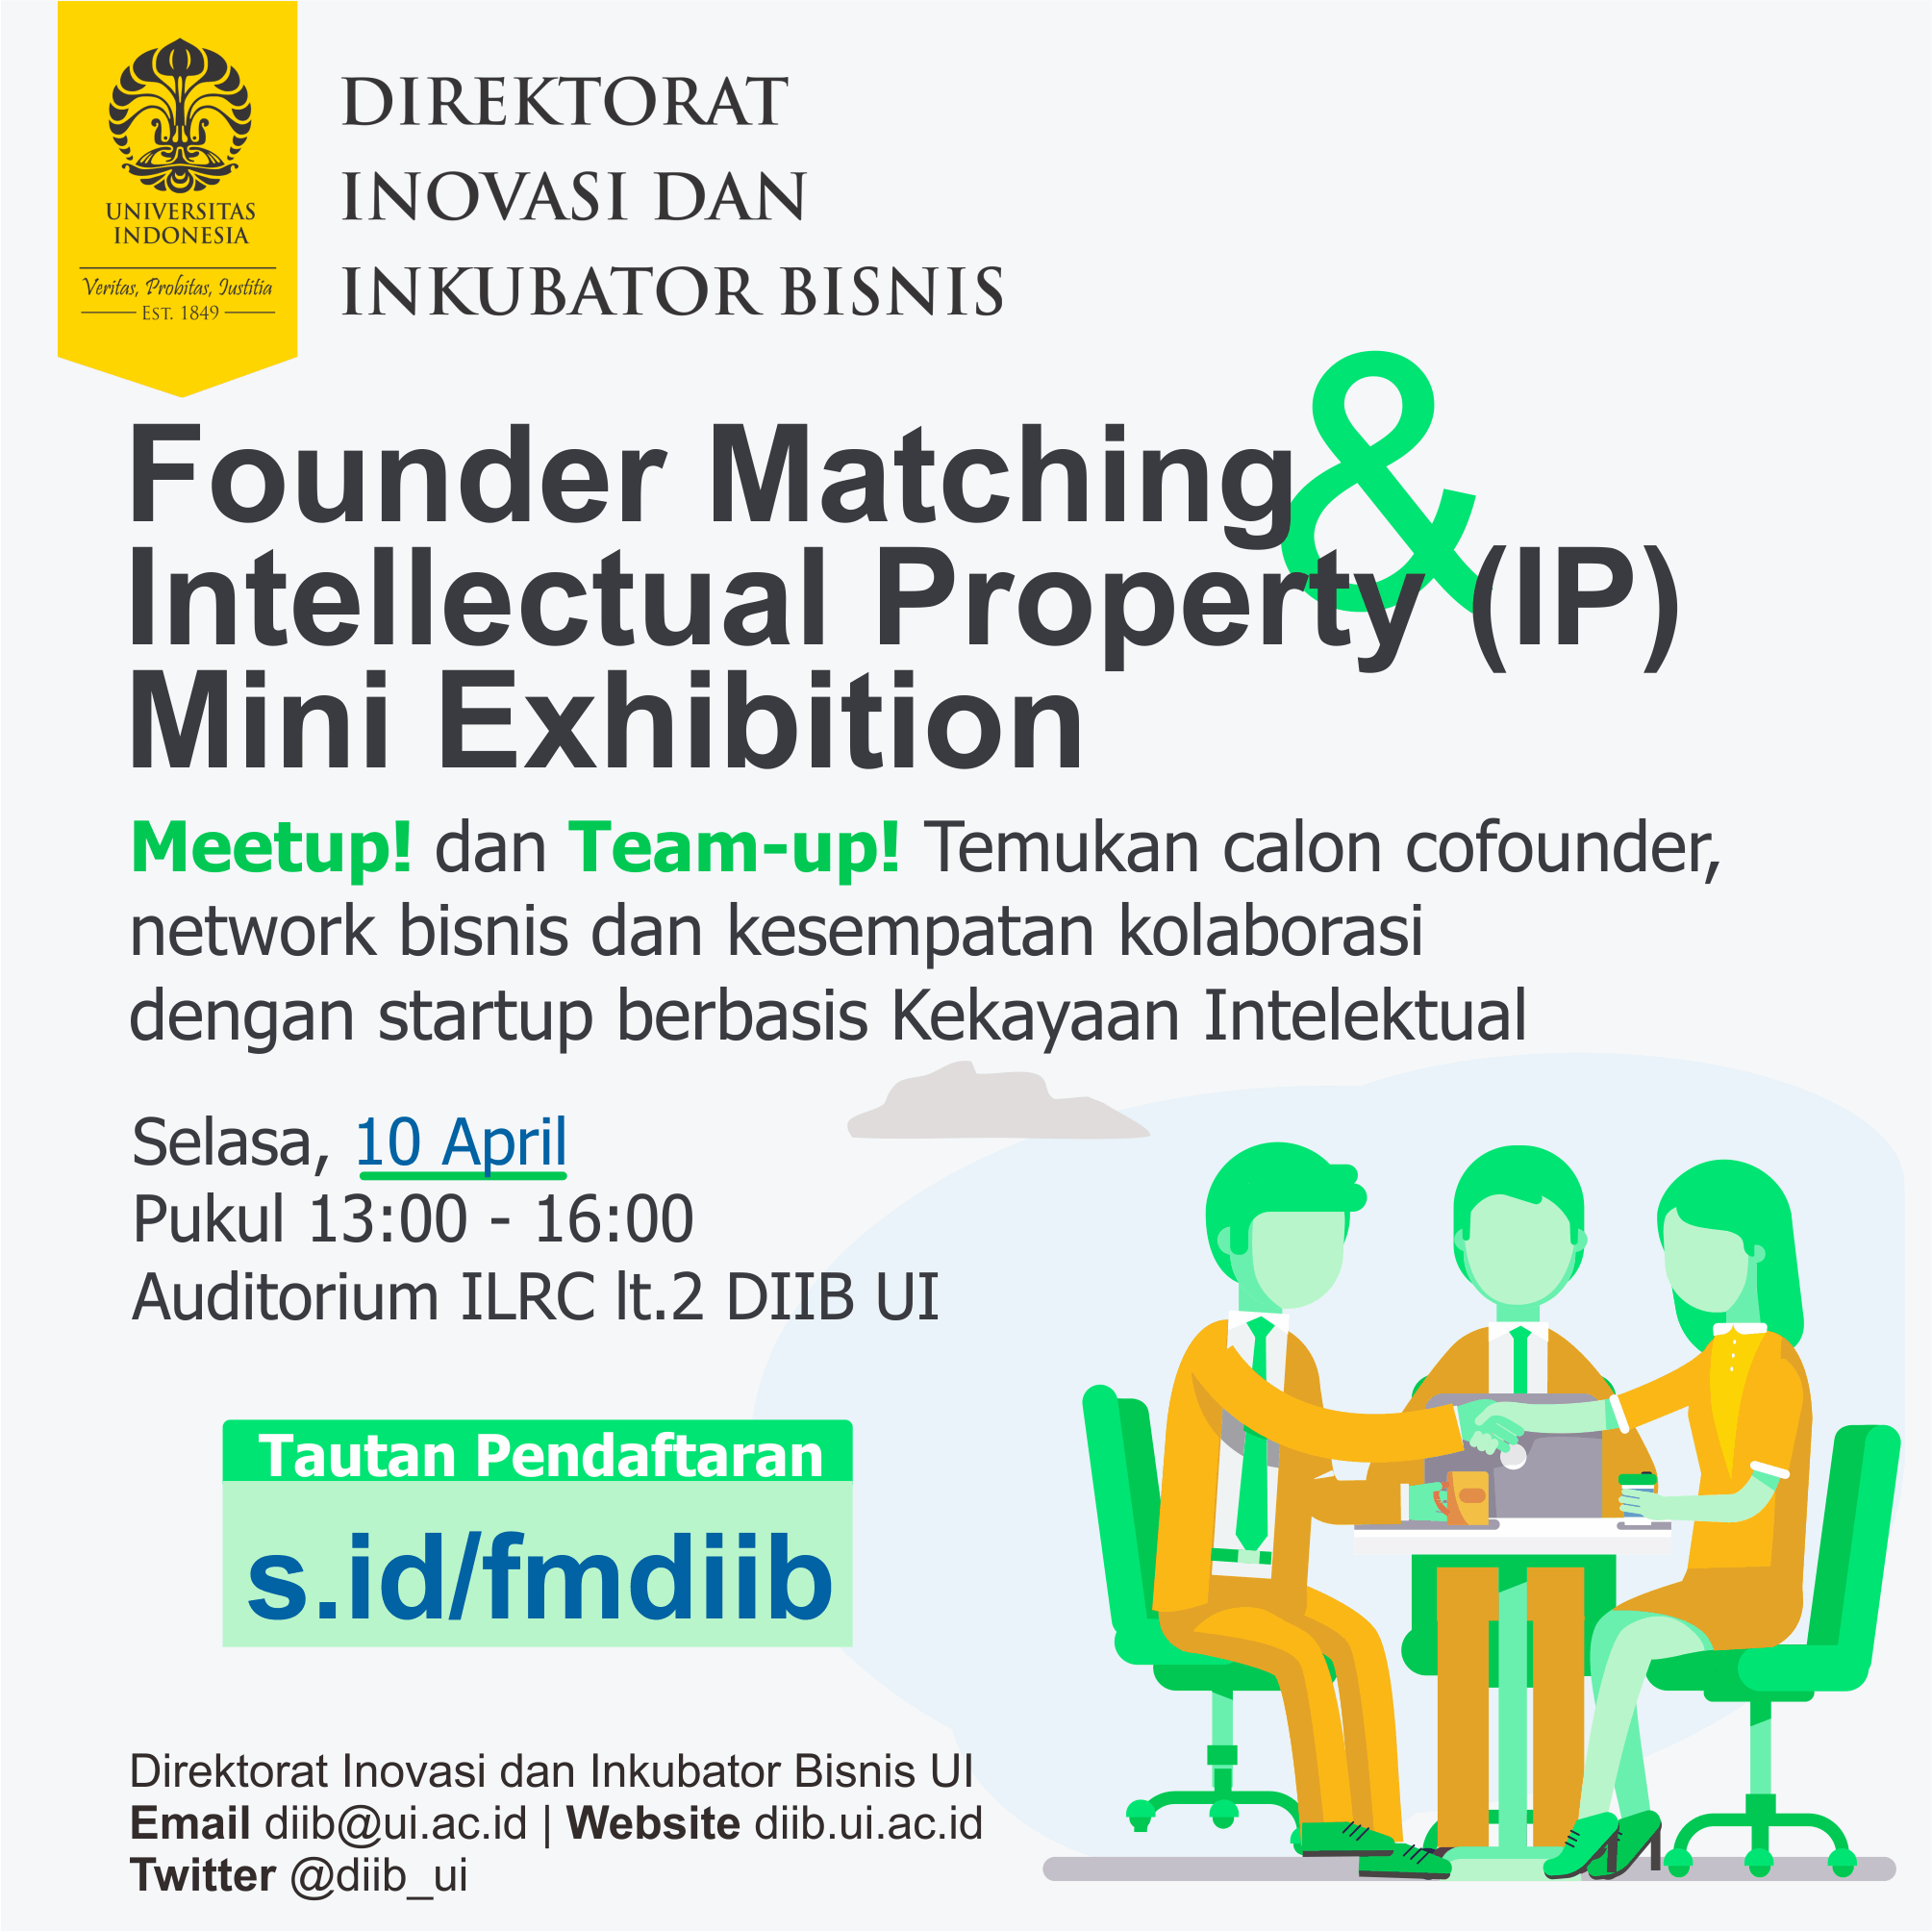 Founder Matching & Intellectual Property (IP) Mini Exhibition - Auditorium ILRC lt.2 DIIB UI, 10 April 2018